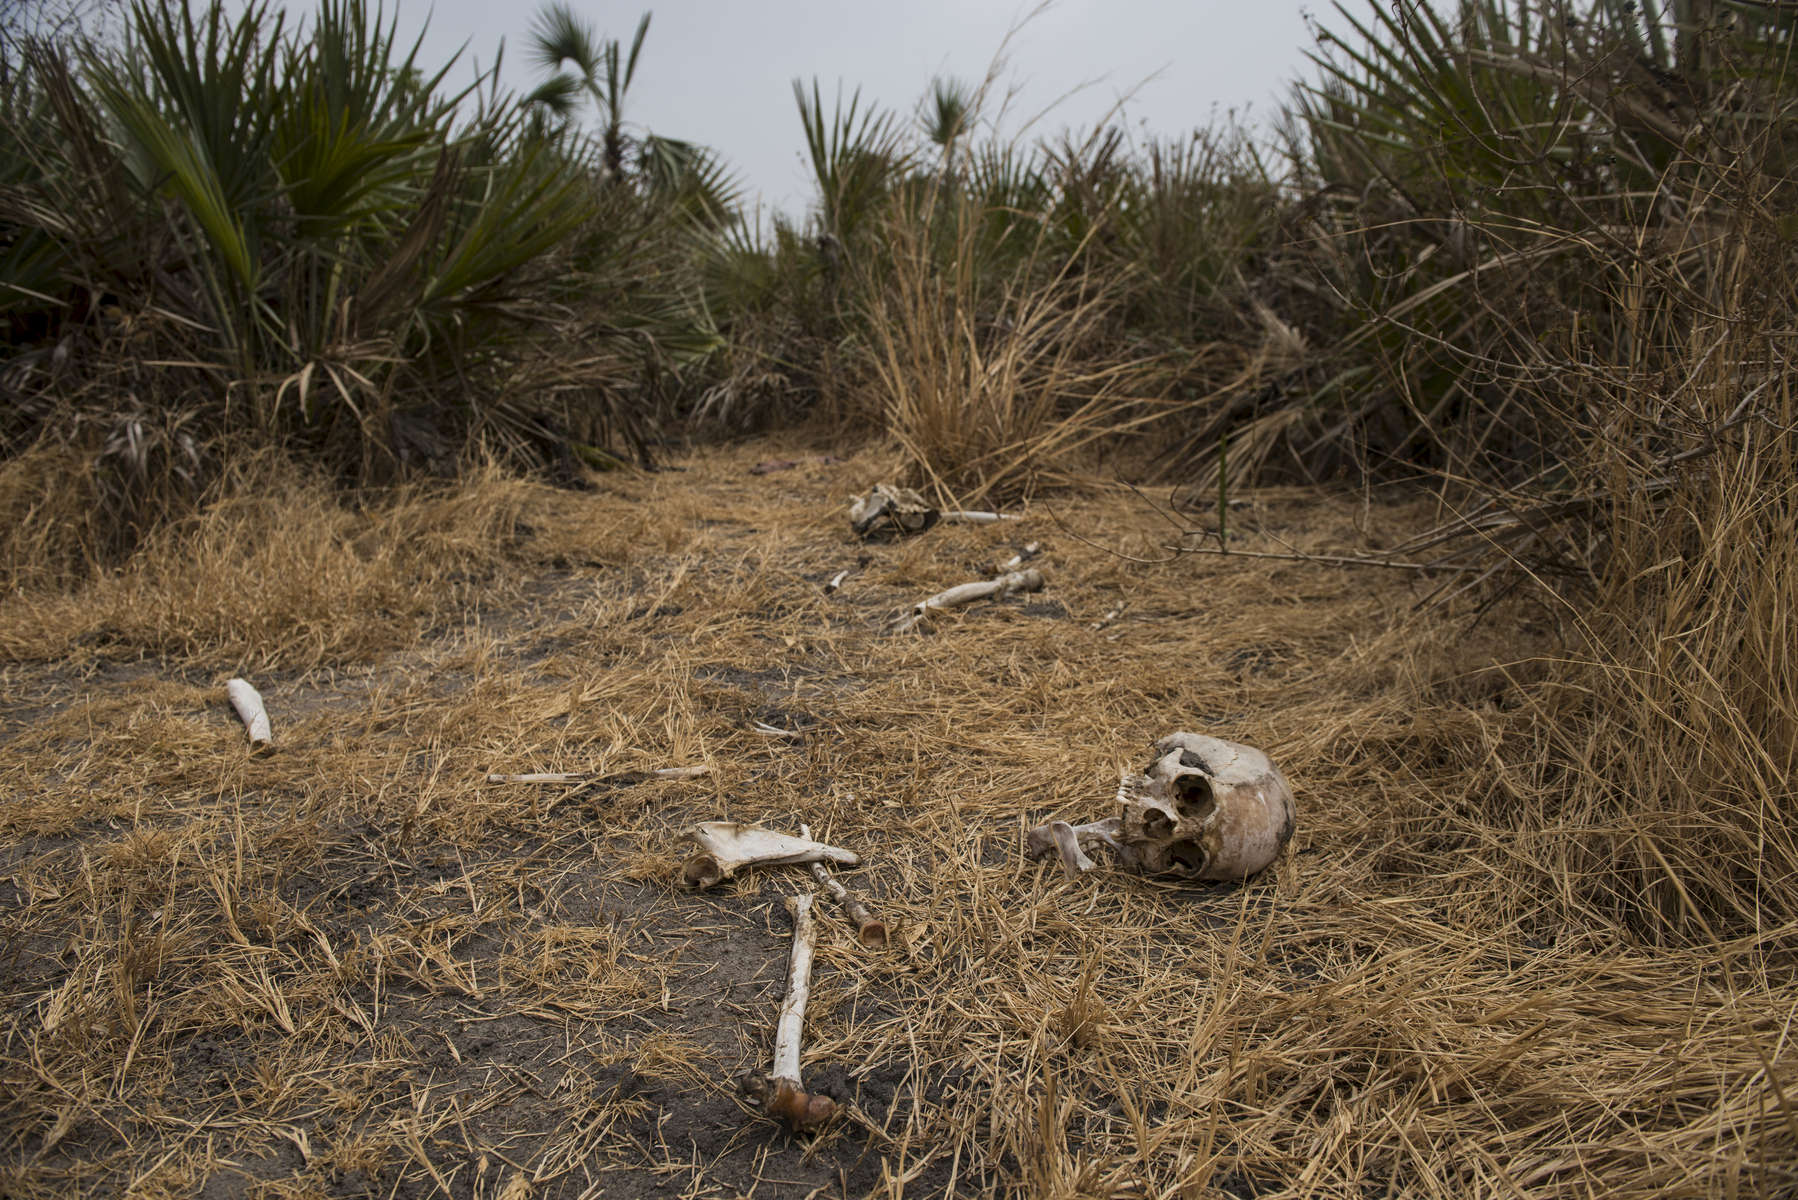 Skeletons and bones litter the ground at the site of a mass grave, where the corpses of roughly fifty men were dumped after soffocating inside of a container at the hands of the South Sudanese Government in Leer, in Unity State, South Sudan, March 18, 2016.  When fighting raged throughout Leer in 2014 and 2015, most of the population fled, leaving civilians unable to harvest crops,and many struggling to find food. The city of Leer, once a bustling city and headquarters of opposition leader Riek Marchar, is now a ghost town reduced to rubble and the carcases of buildings. (Credit: Lynsey Addario for Time Magazine)